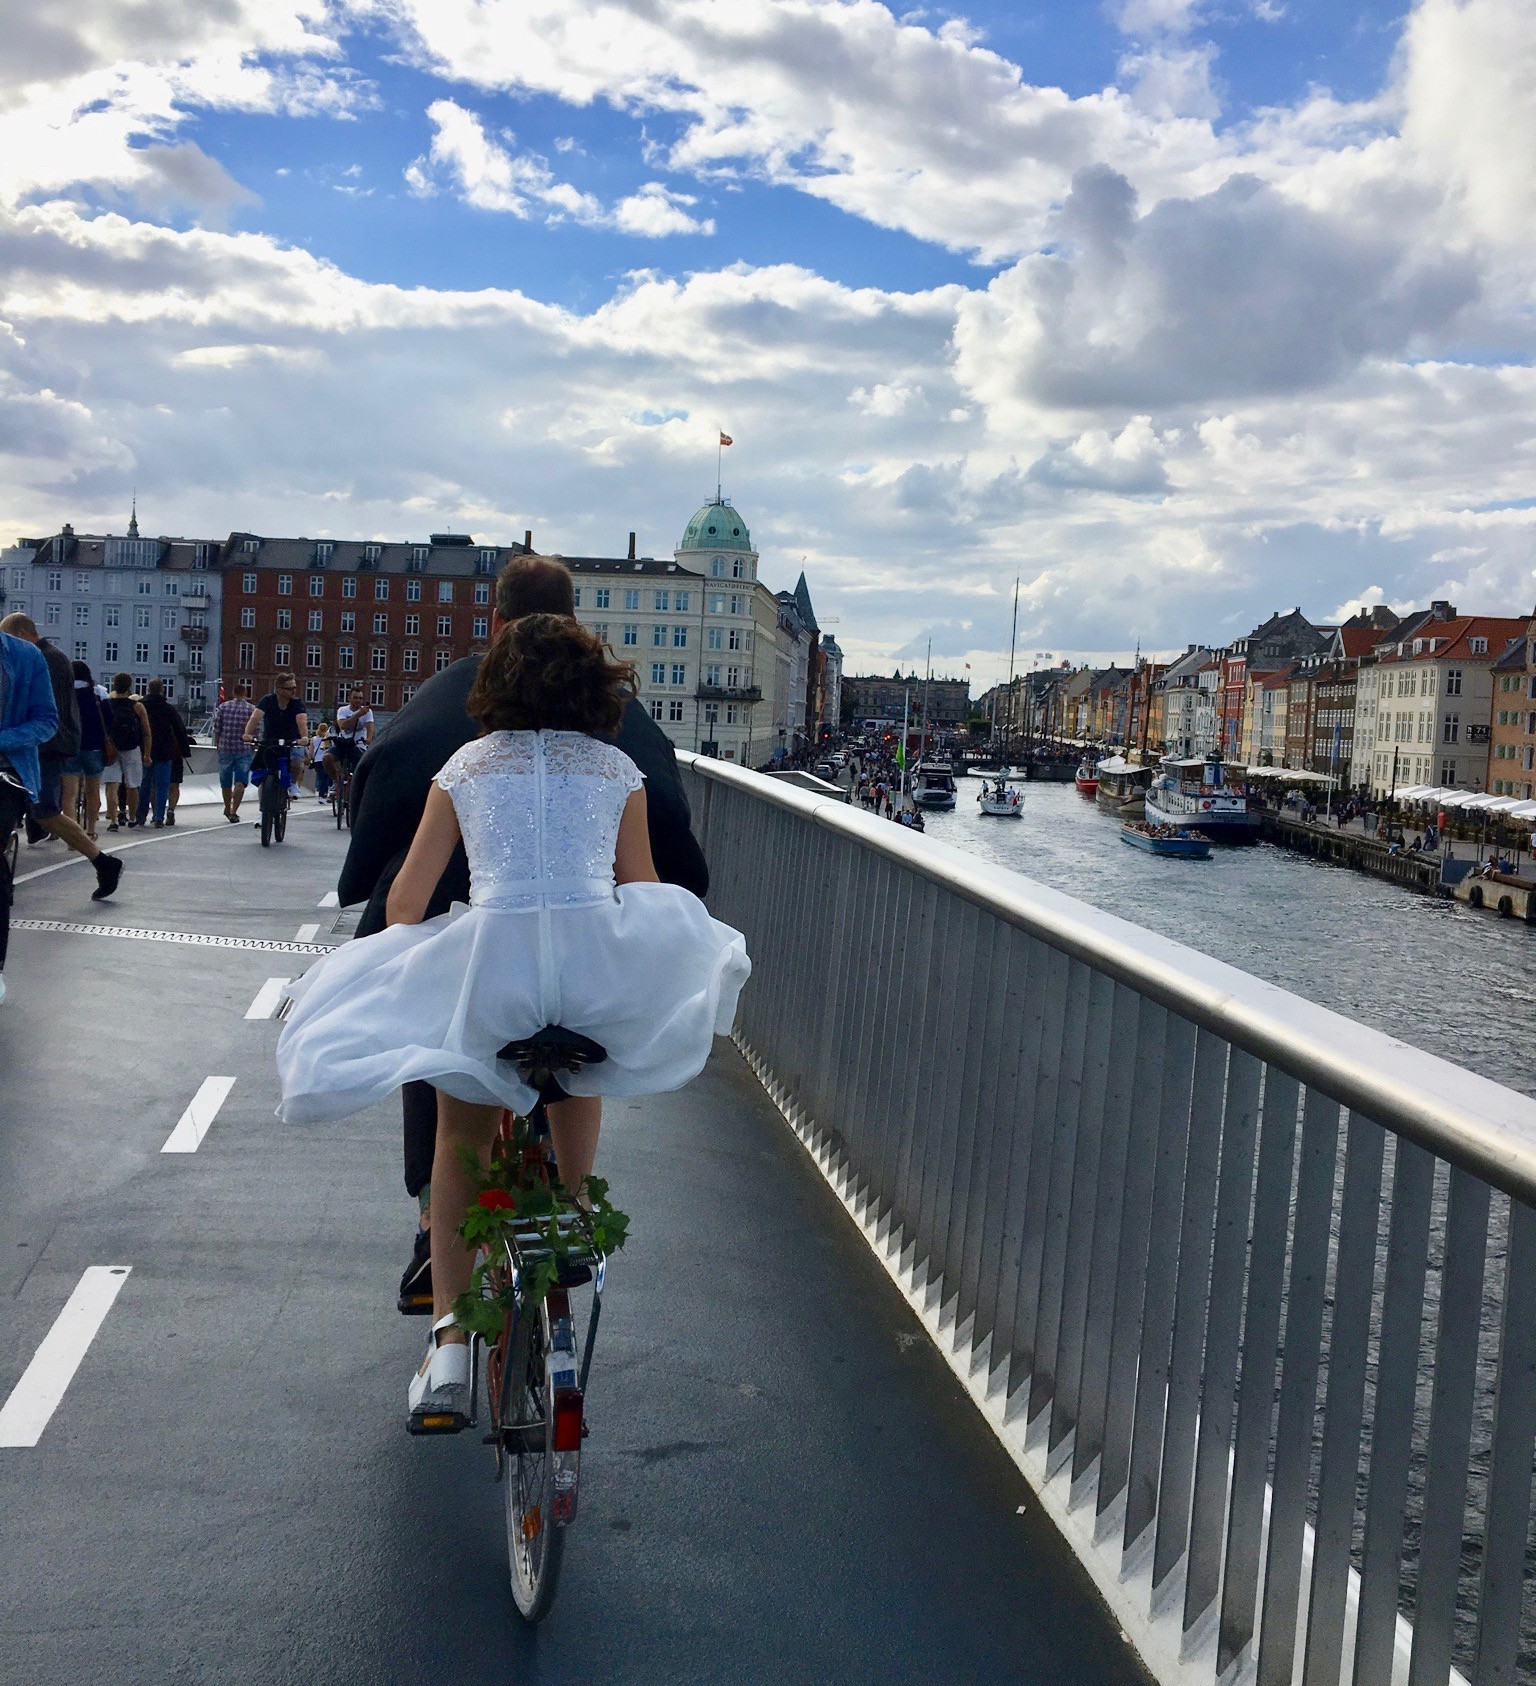 How to get married in Denmark - Mariana Sosa Cordero - Medium